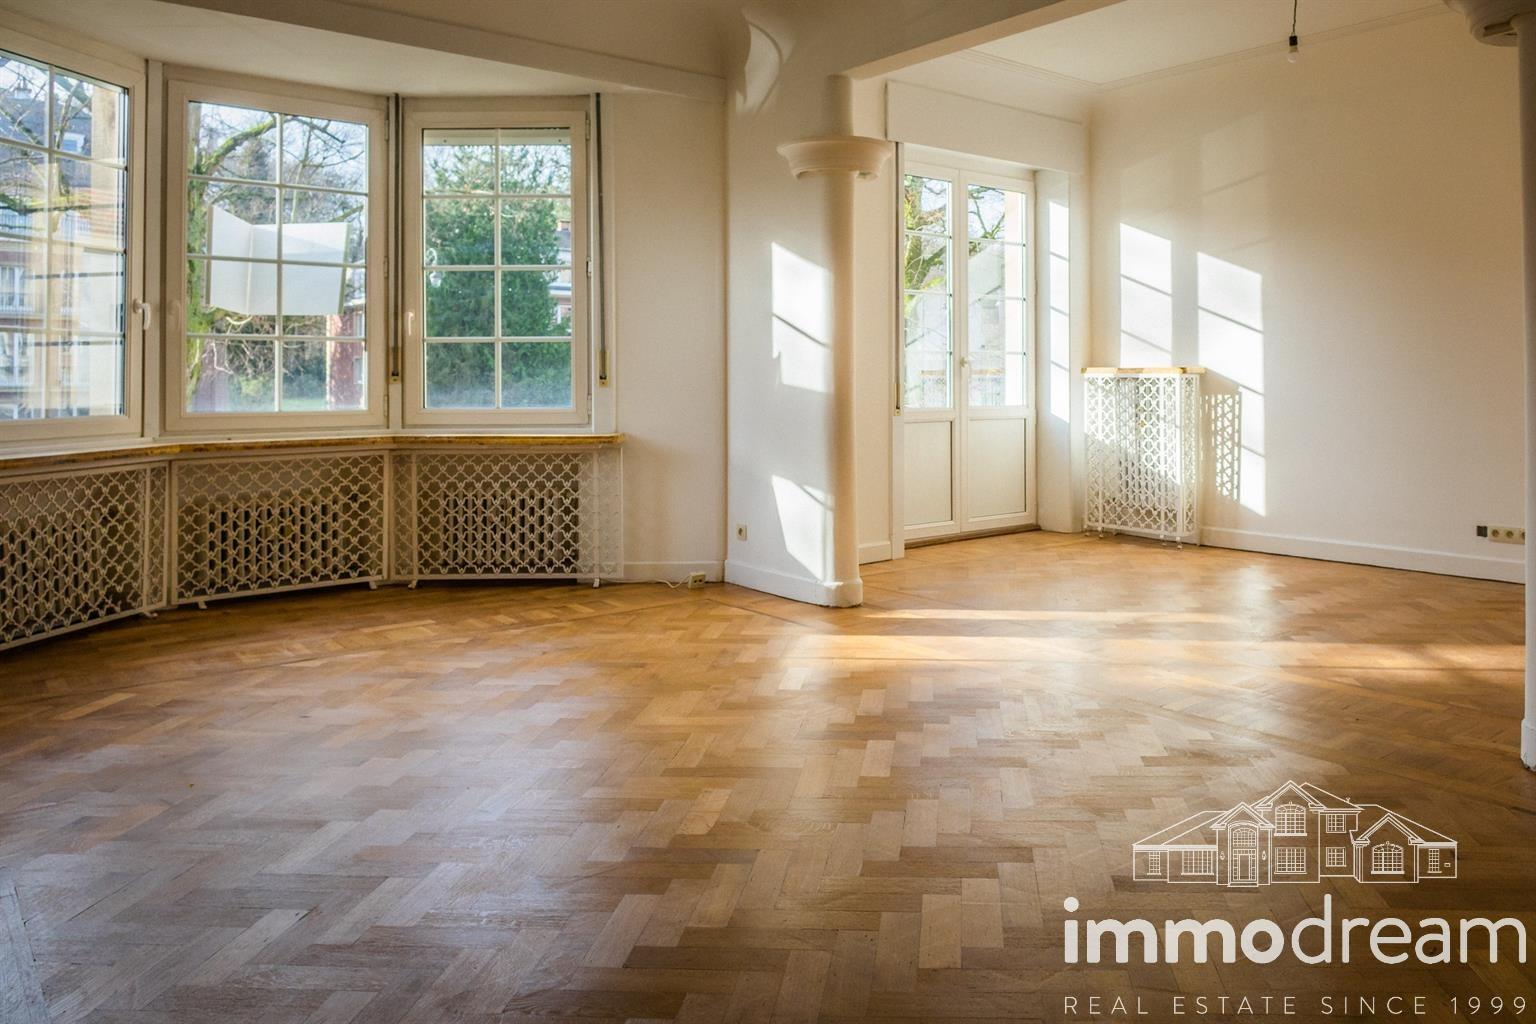 Flat in charming house - Bruxelles - #4263200-0